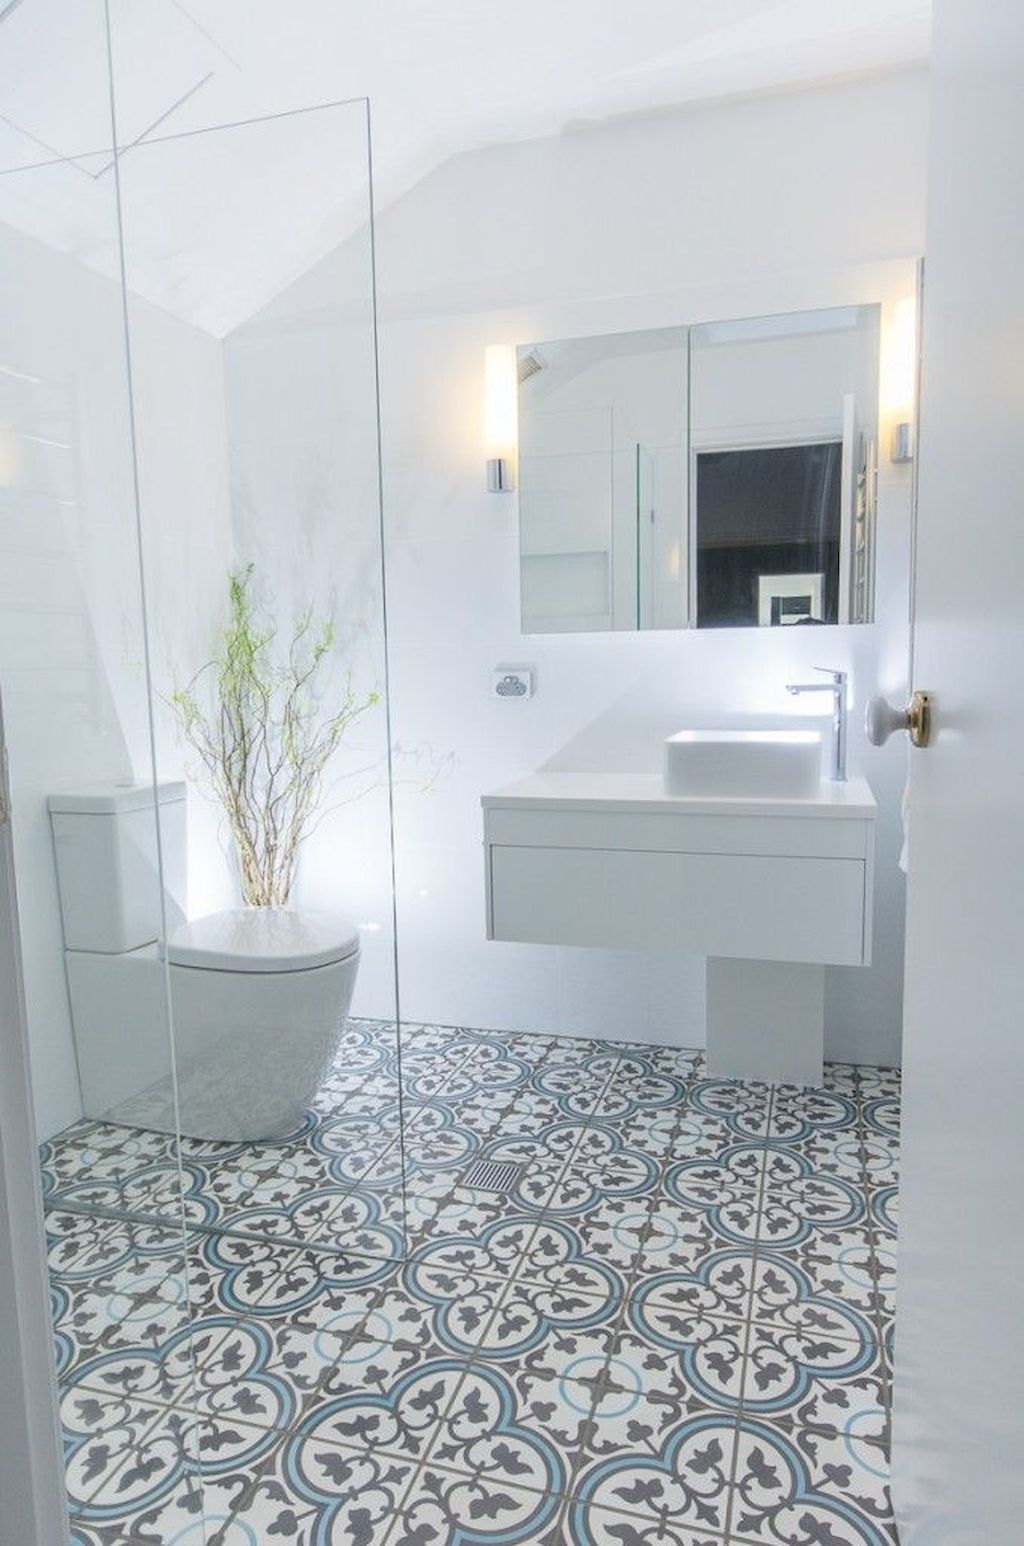 70+ Tiles Ideas for Small Bathroom - Get more Ideas in our gallery | #smallbathroom #bathroomdecoration #bathroomideas #bathroomtiles #bathroomdecor #homedecor (66)